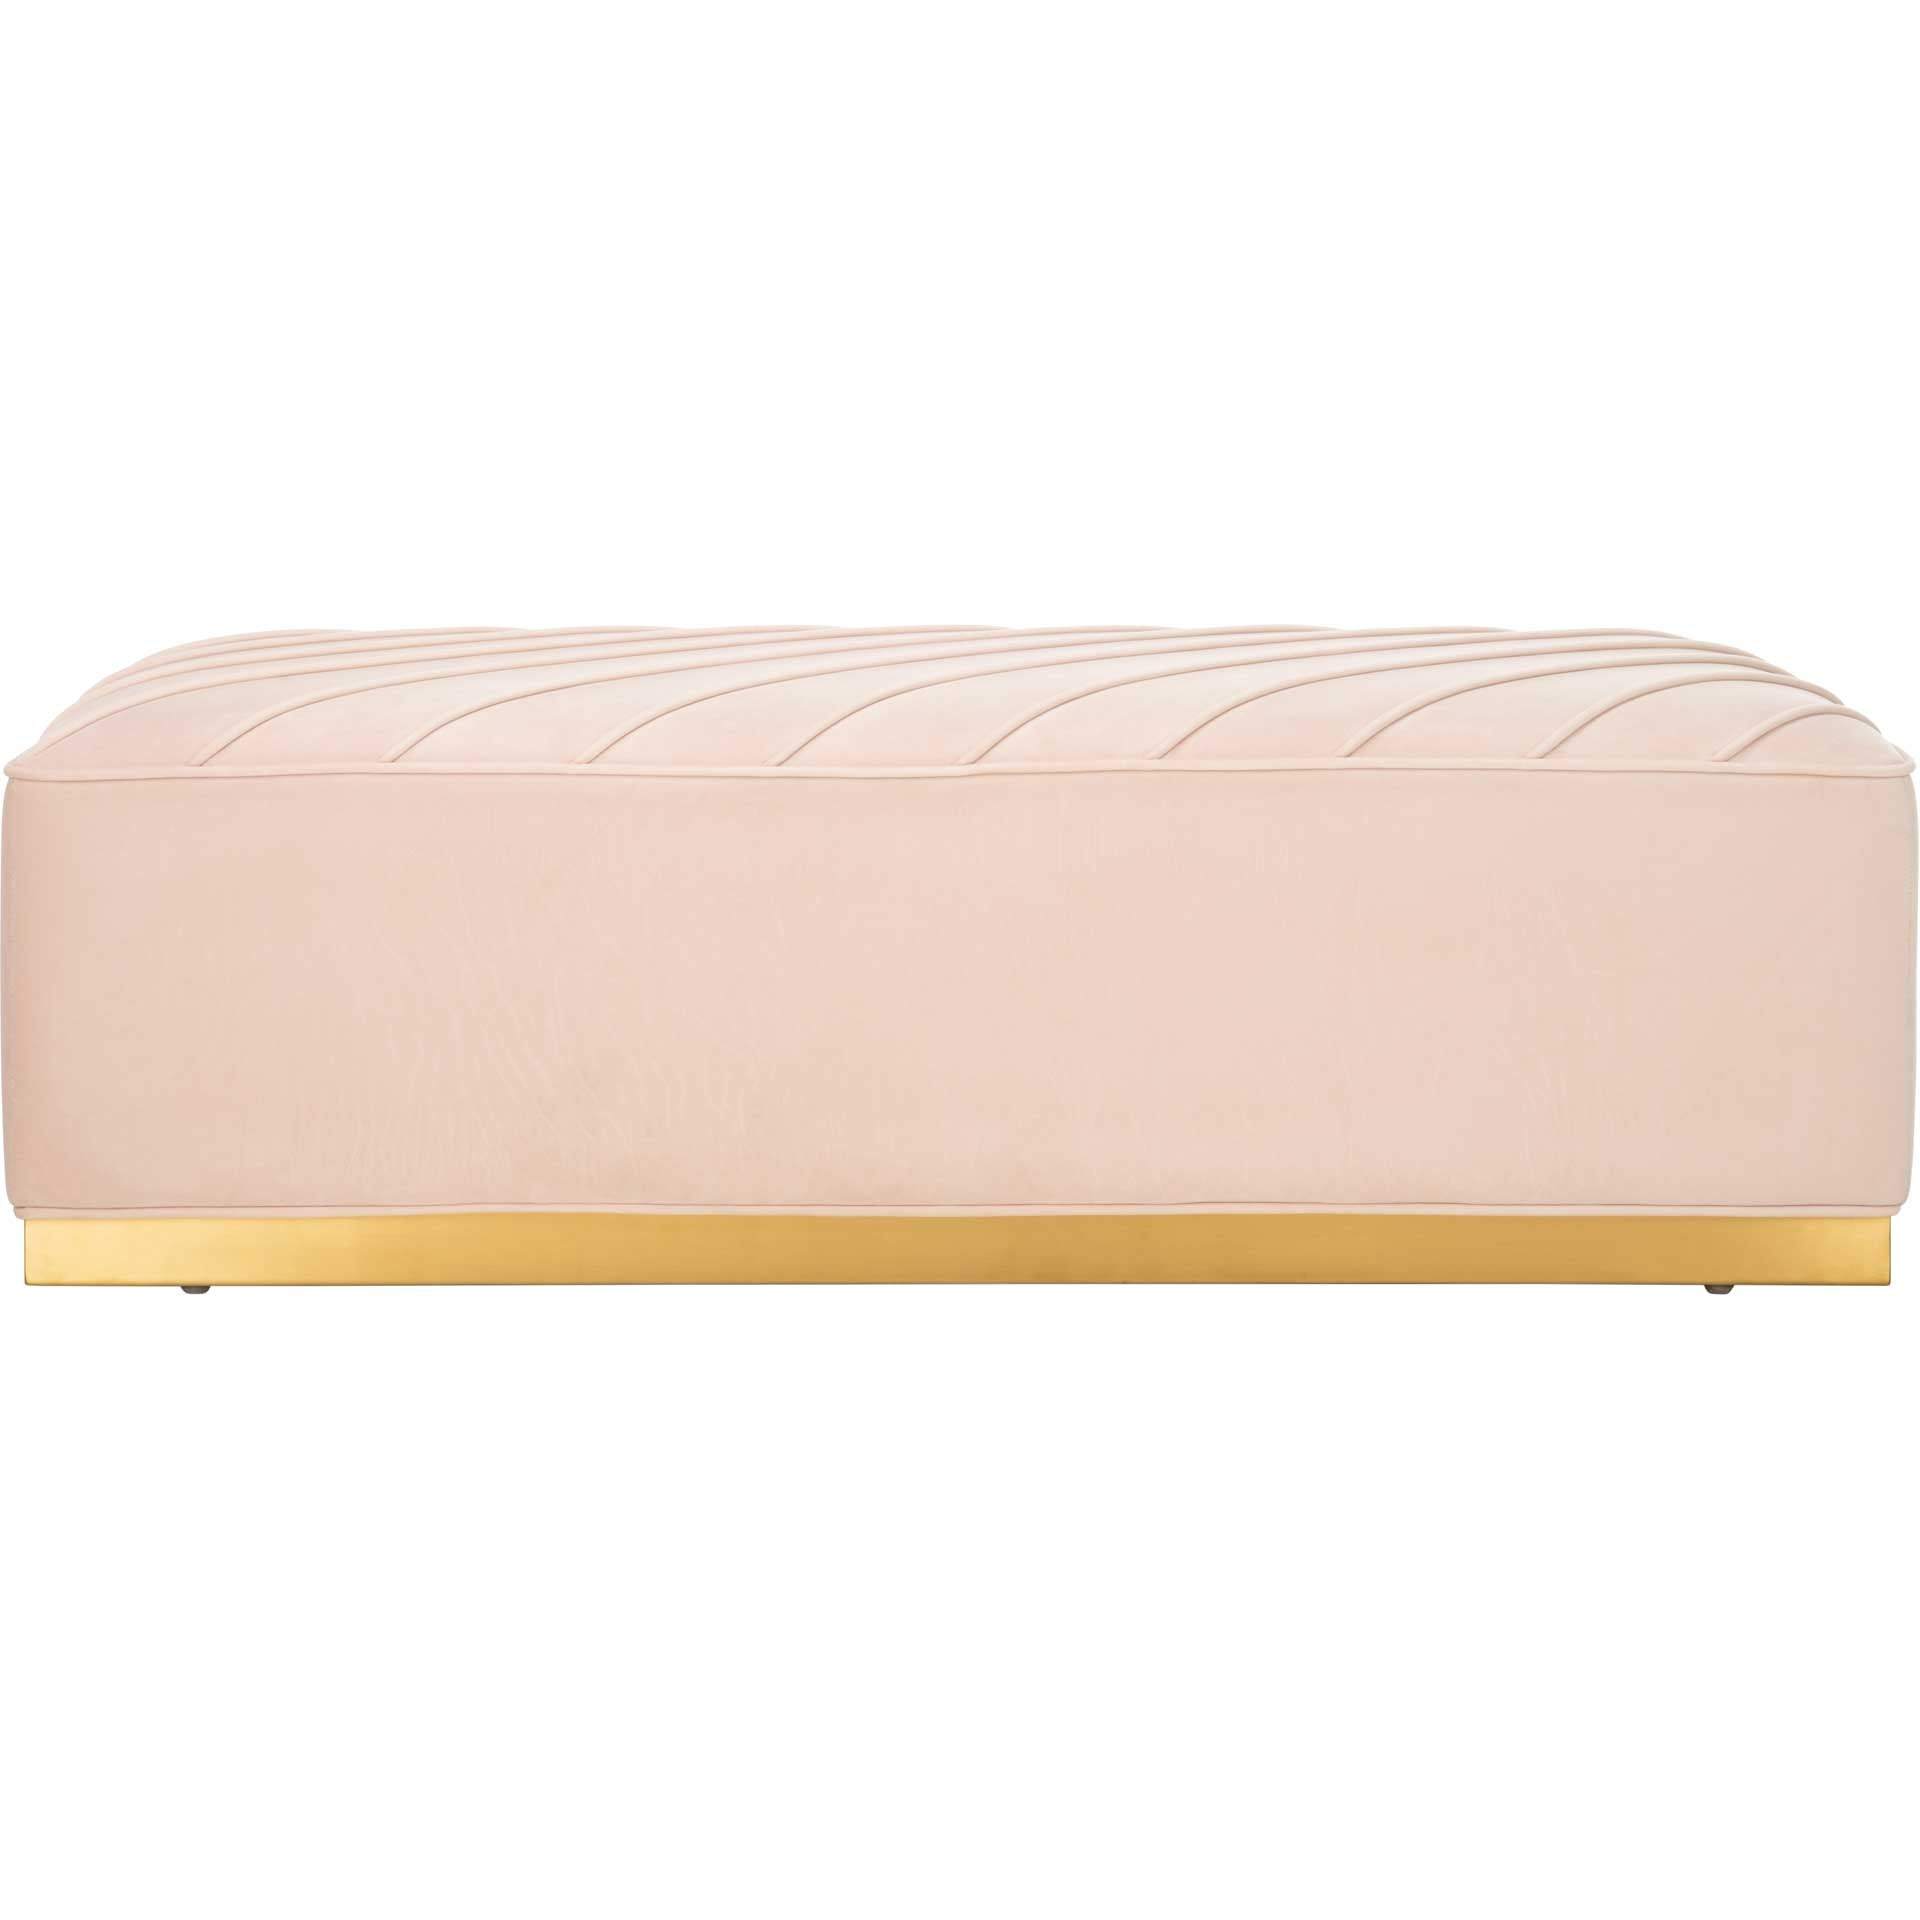 Lilith Diagonal Tufted Ottoman Light Pink